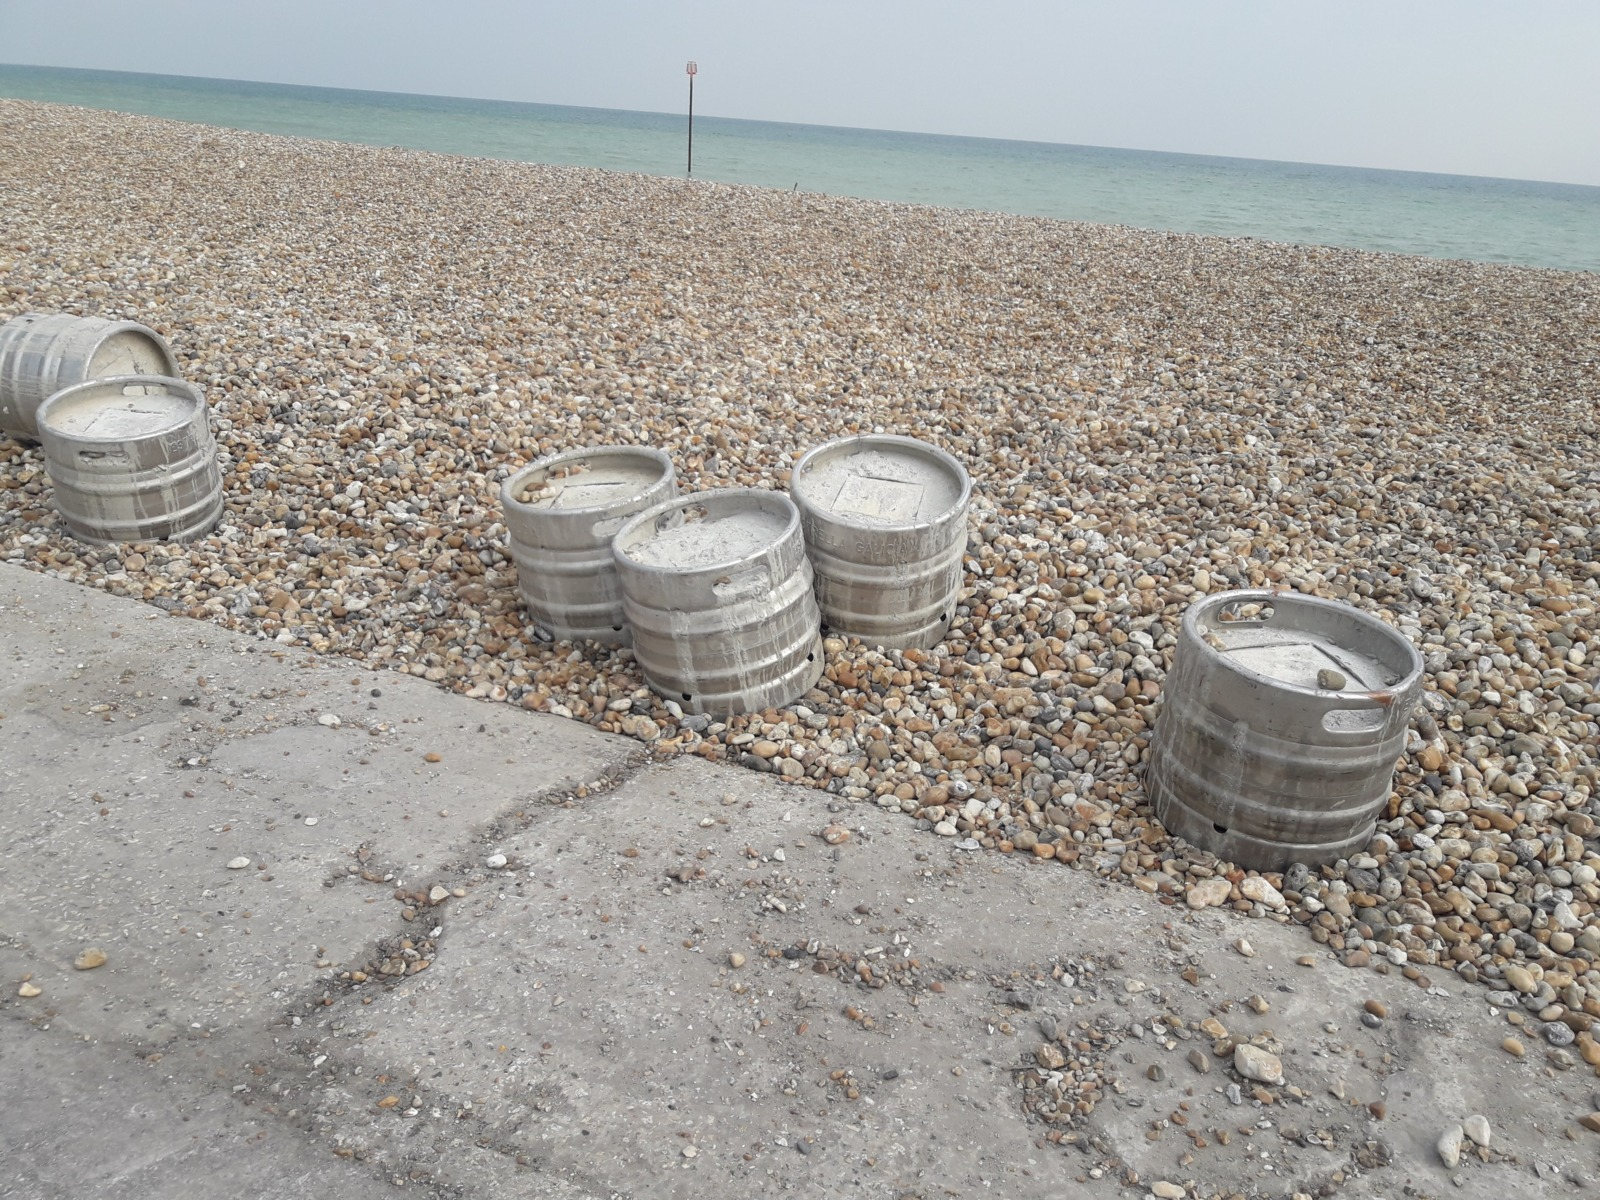 Beer barrels on the beach